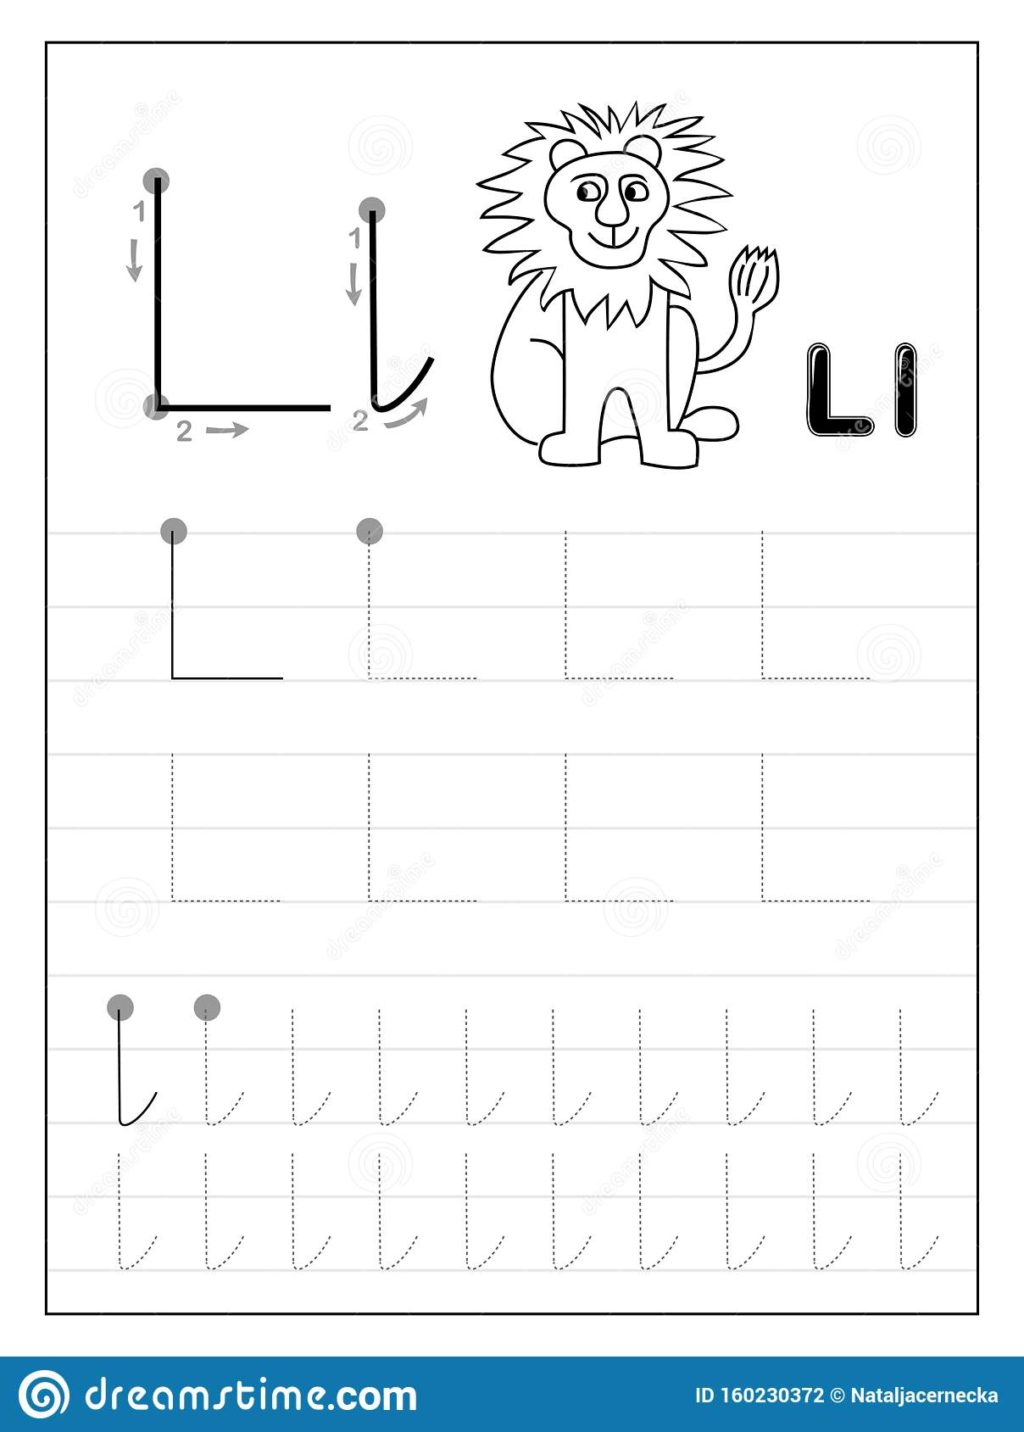 Worksheet ~ Tracing Alphabet Letter L Black And White intended for Alphabet L Tracing